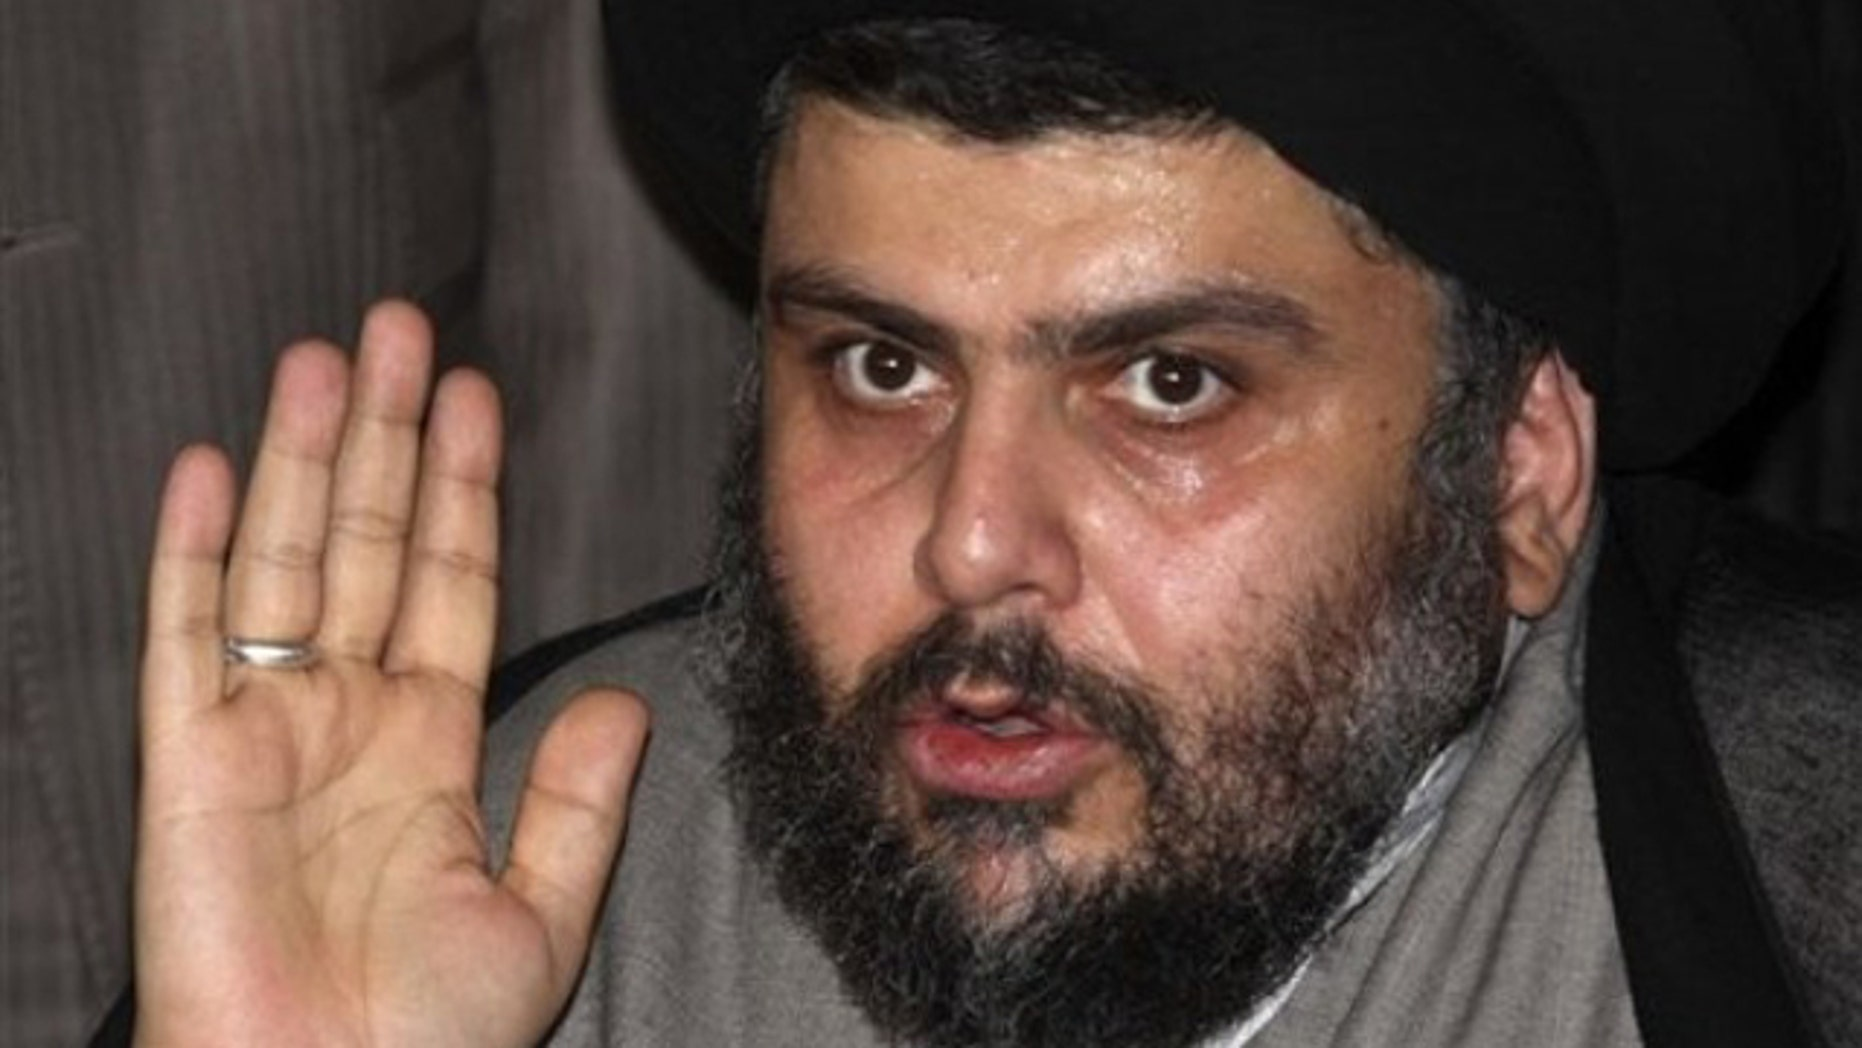 July 19: Muqtada al-Sadr, one of Iraq's most powerful Shiite political clerics, speaks to reporters following a meeting with former Iraqi Prime Minister Ayad Allawi in Damascus, Syria.